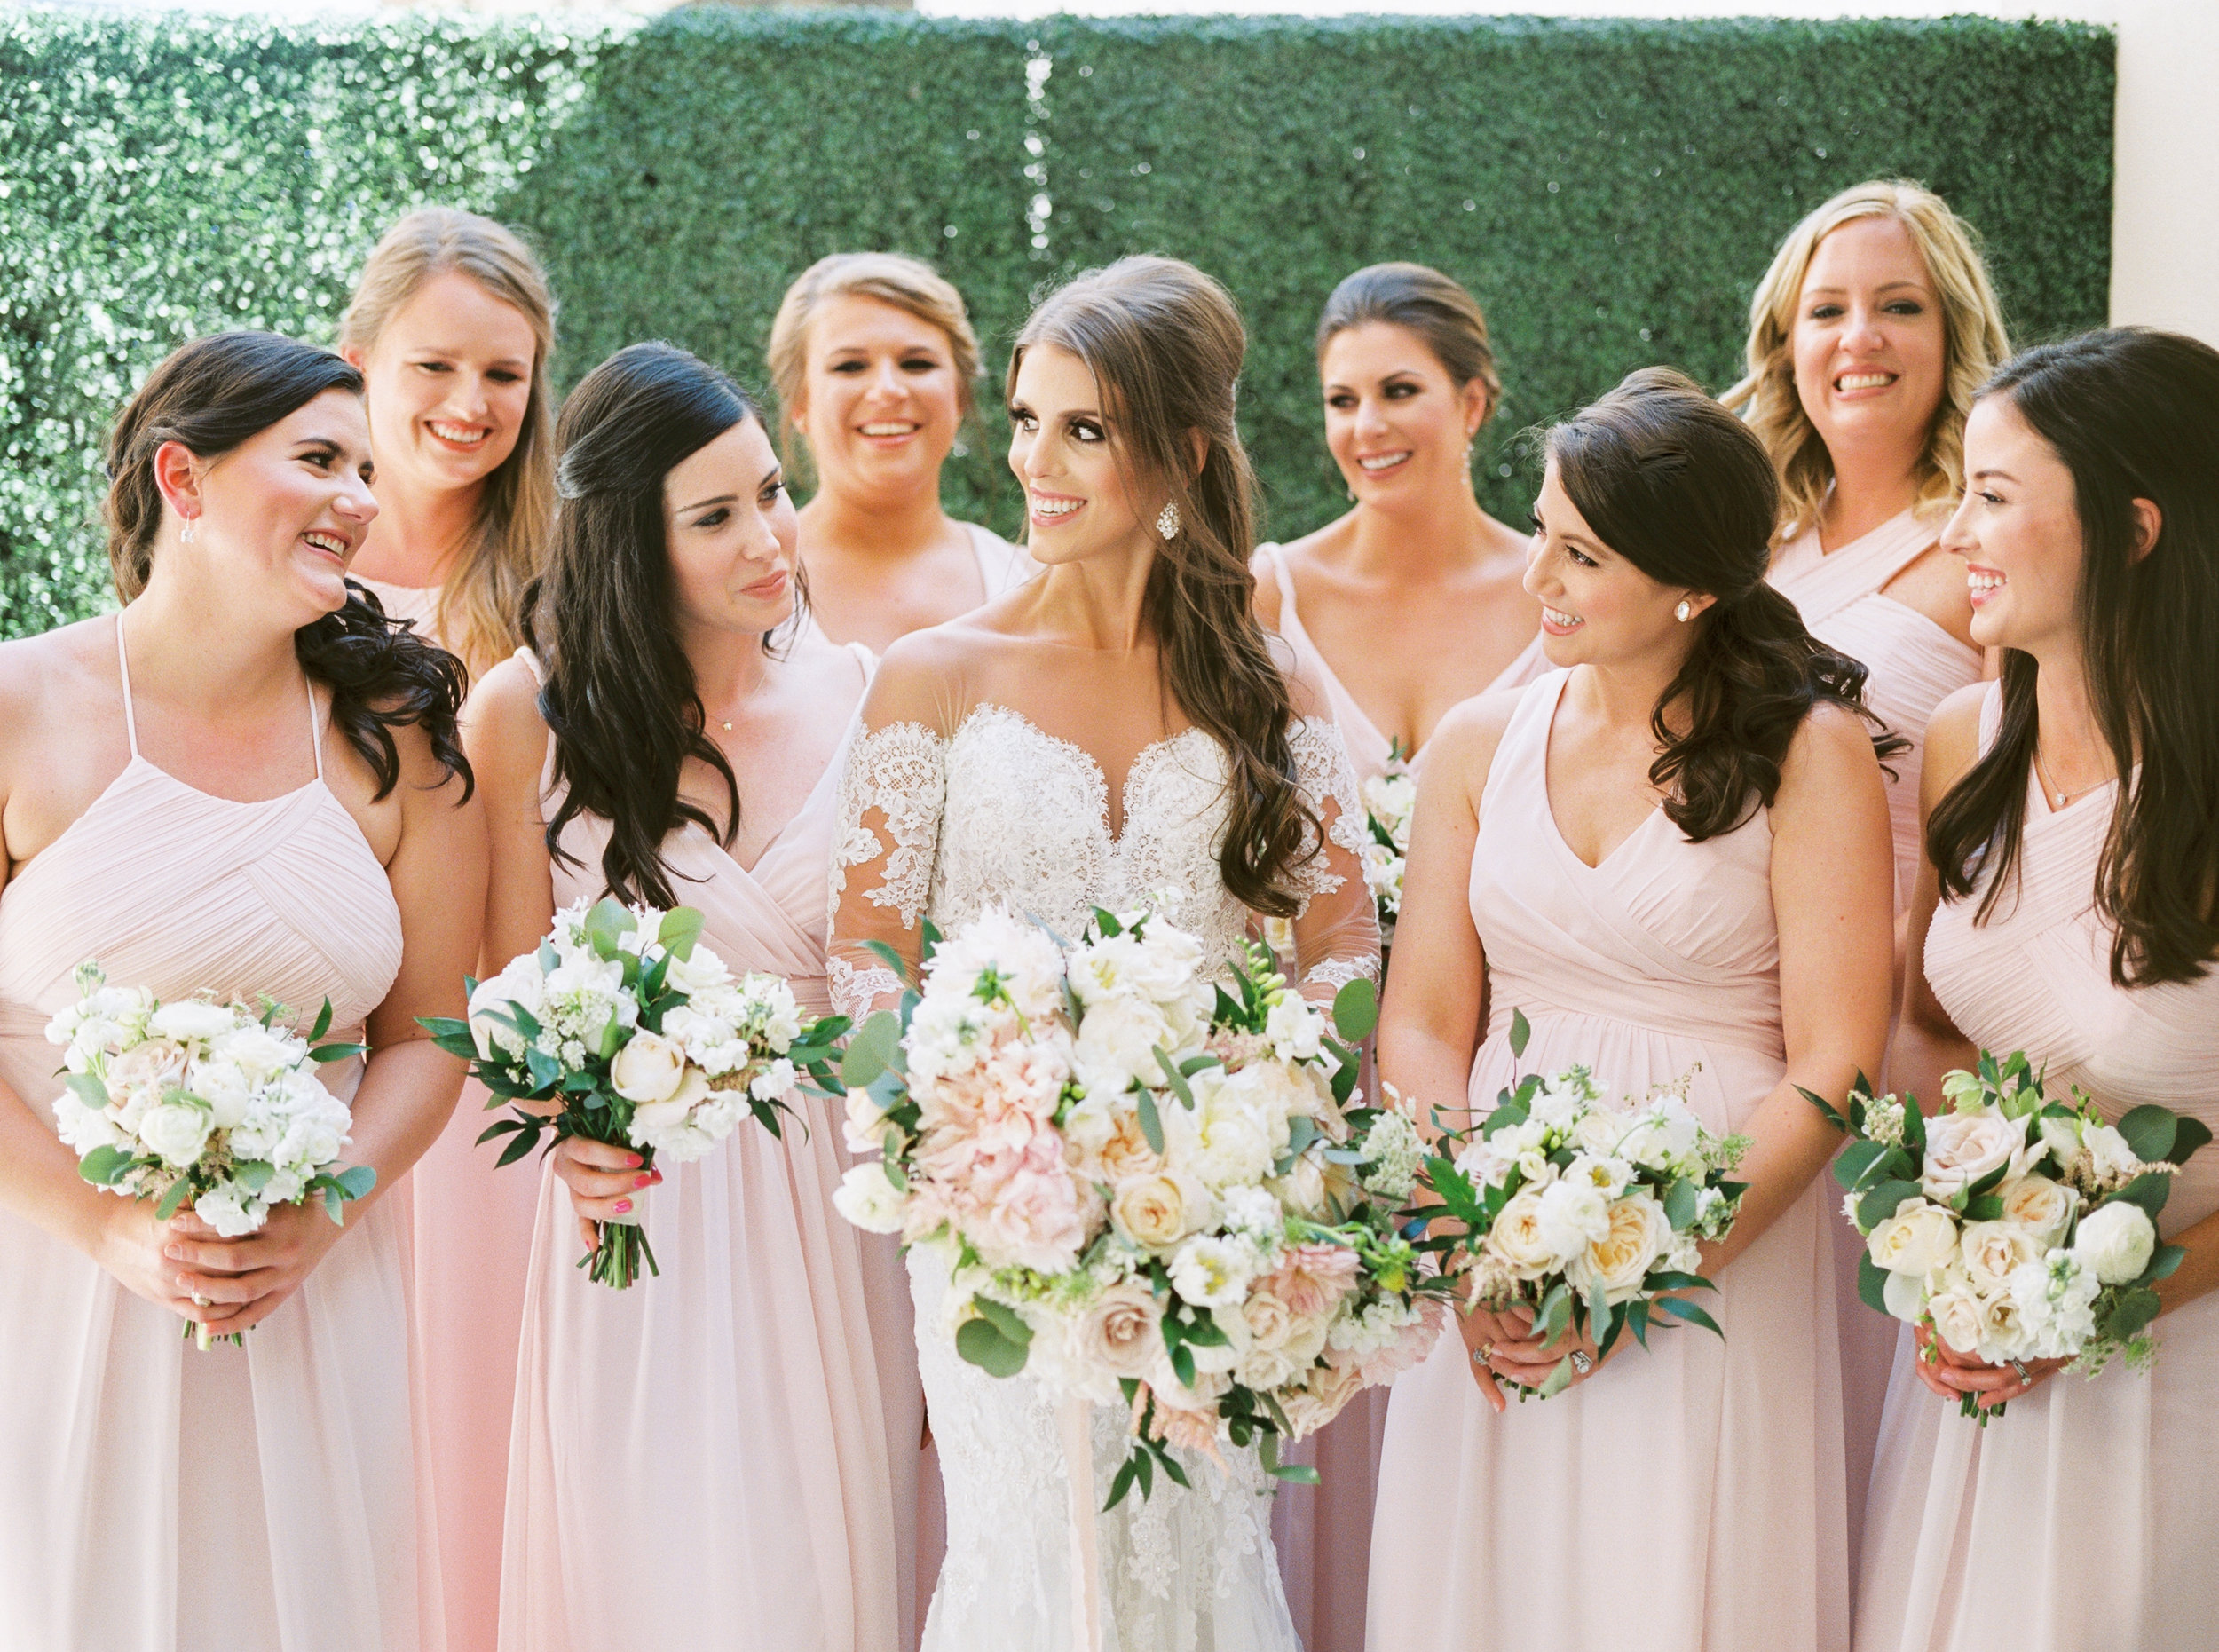 Elegant Dallas Wedding at the Adolphus Hotel - Lindsey Brunk